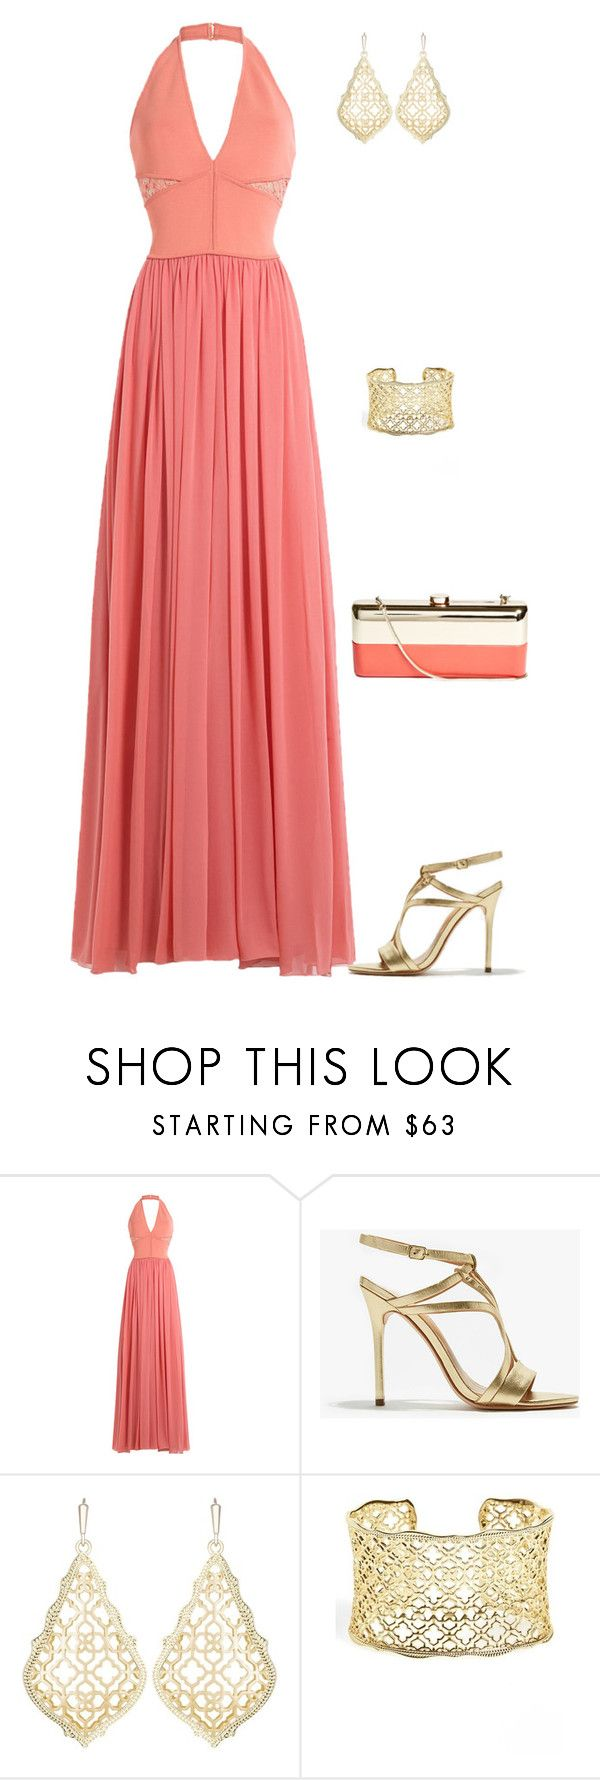 """outfit 5984"" by natalyag ❤ liked on Polyvore featuring Elie Saab, Halston Heritage, Kendra Scott and GUESS by Marciano"